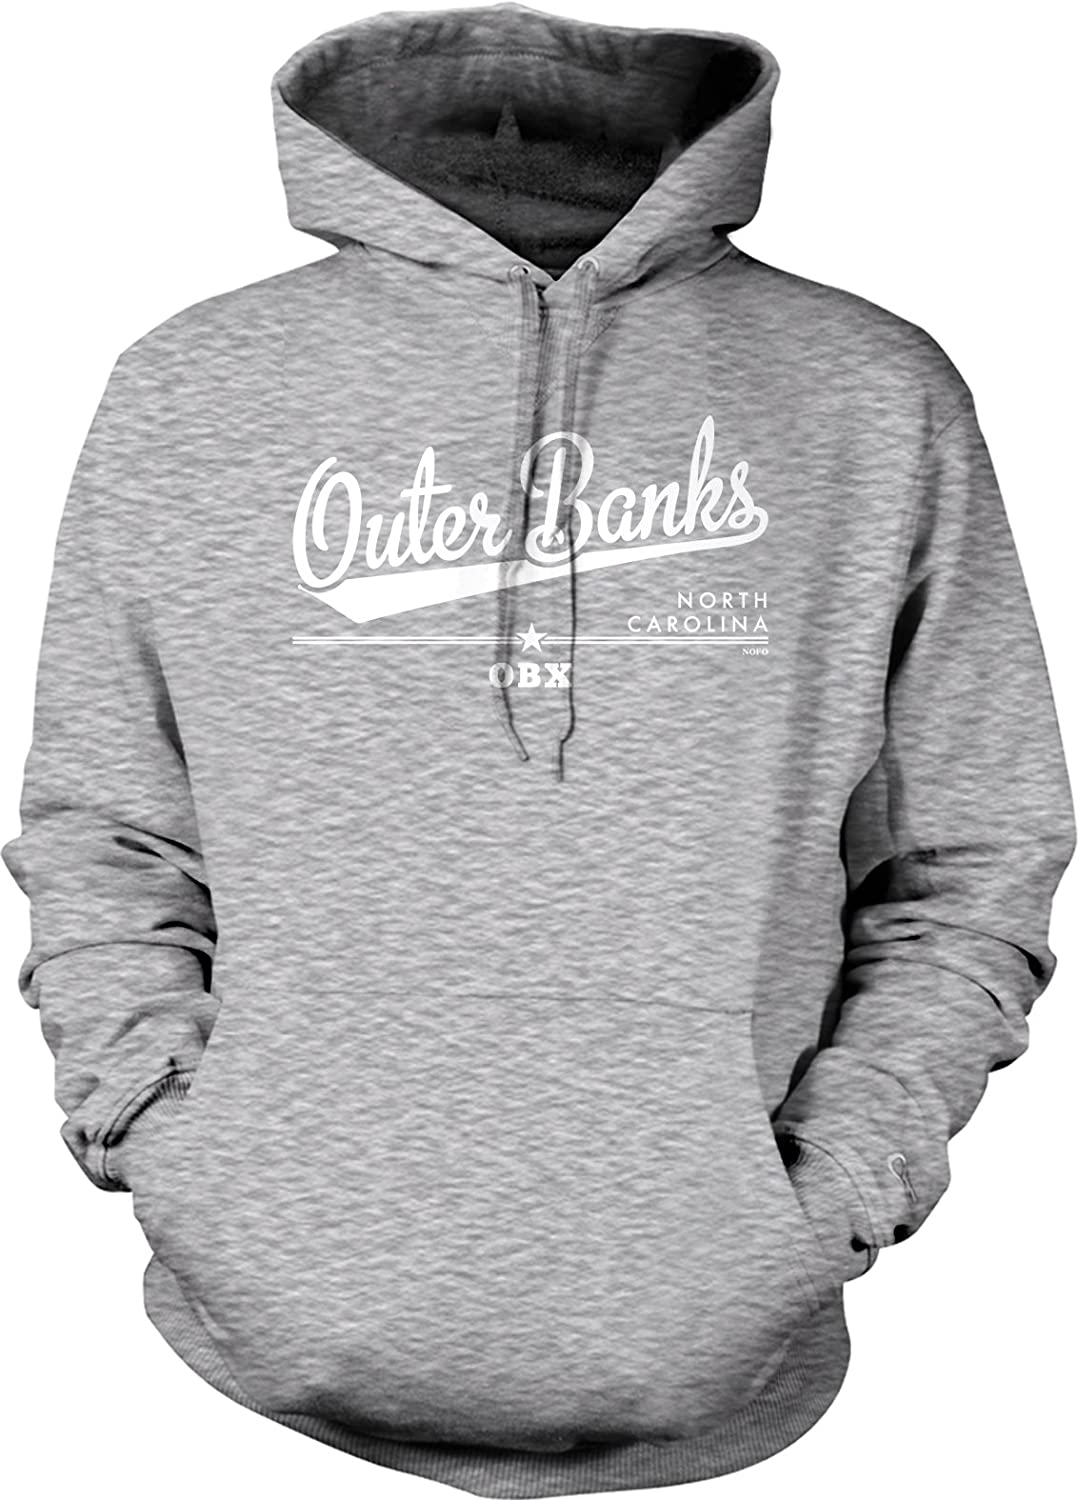 NOFO 25% OFF Clothing Co Outer Banks Sweatsh Luxury OBX North Carolina Hooded